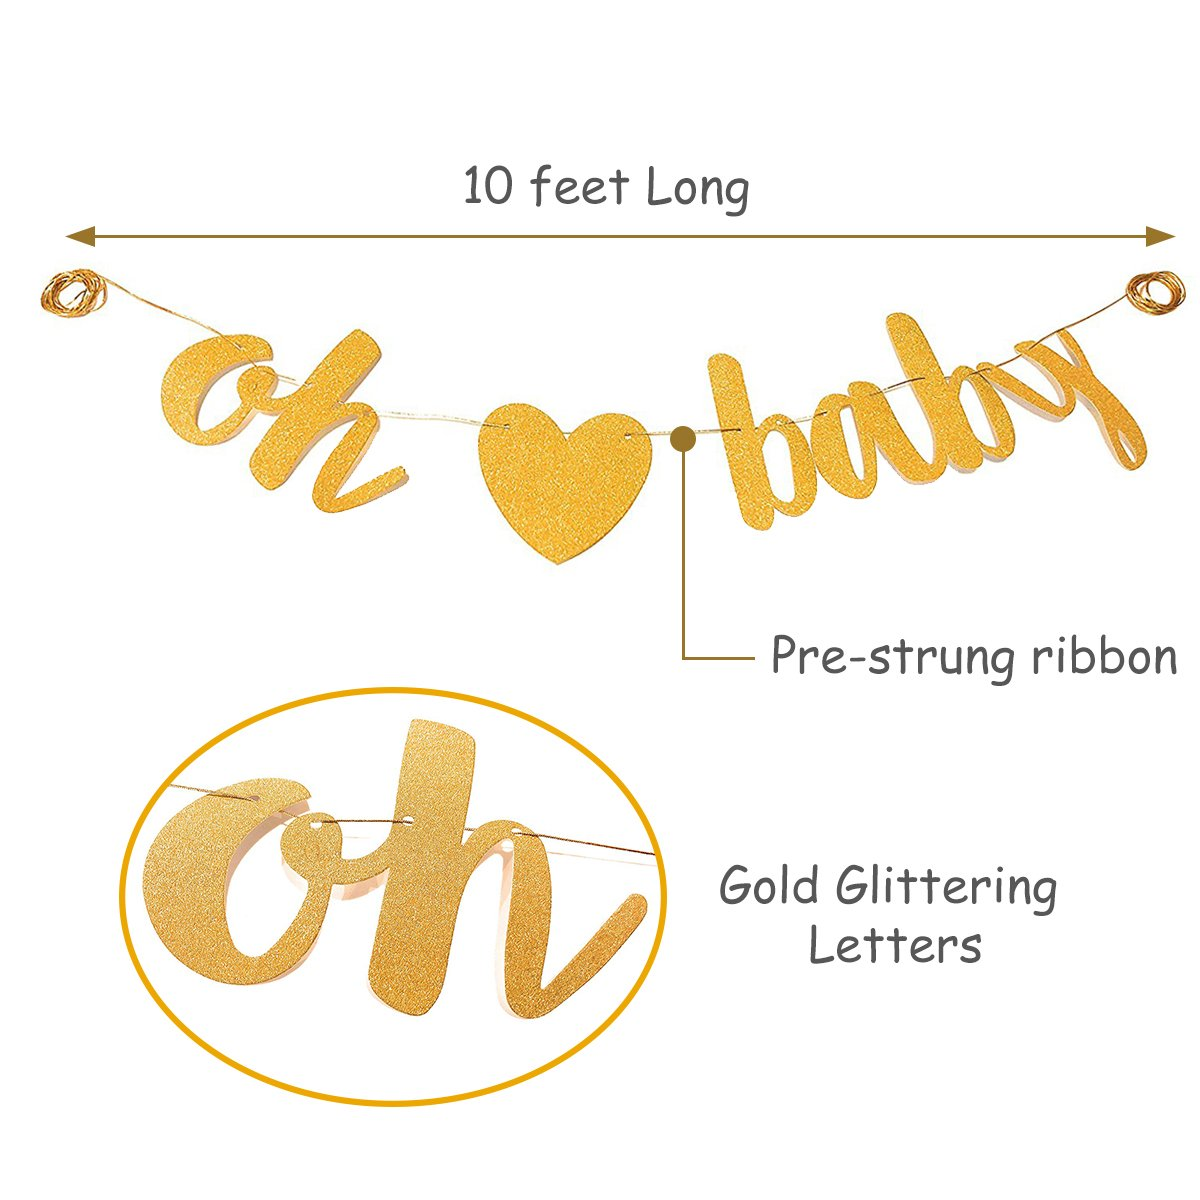 Baby Shower Party Decorations Kit Unisex, Girls and Boys | Oh Baby Banner Neutral Decor | 12 Pcs Balloon Set | Glitter Unisex Pregnancy Announcement Gender Reveal Party | 50 Pcs Premium Baby Shower Emoji Game Cards by Newborn Party (Image #9)